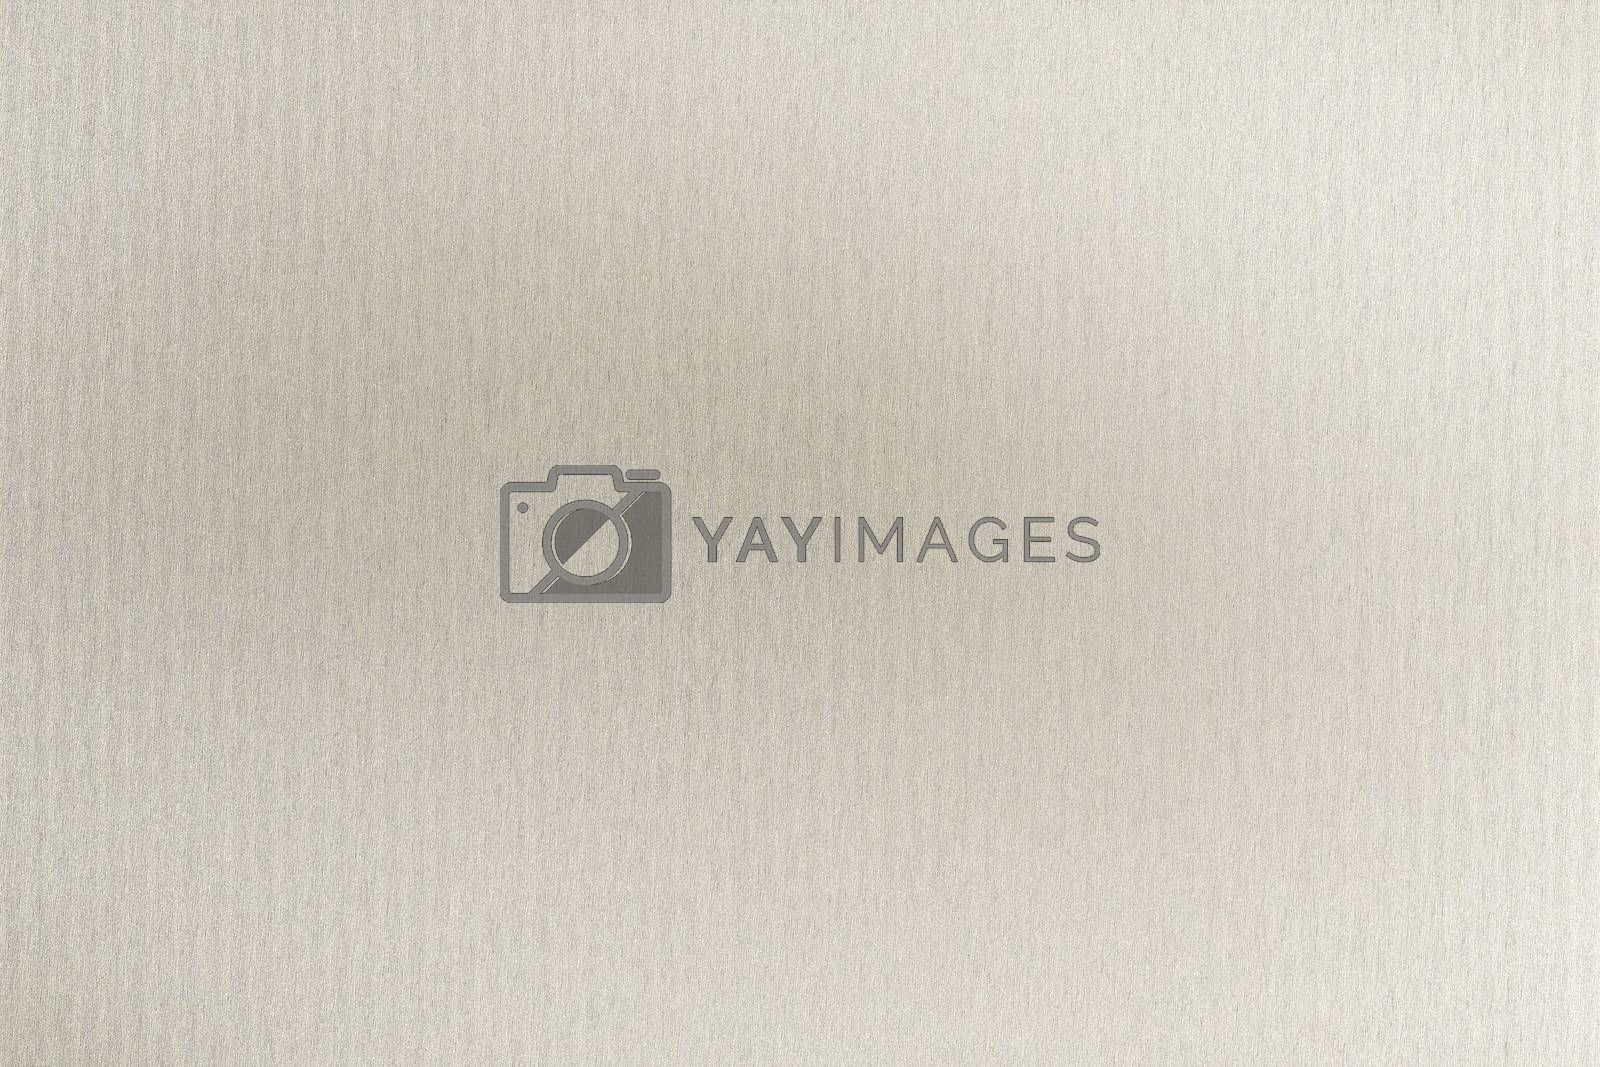 Royalty free image of Brushed white metallic sheet, abstract texture background by mouu007